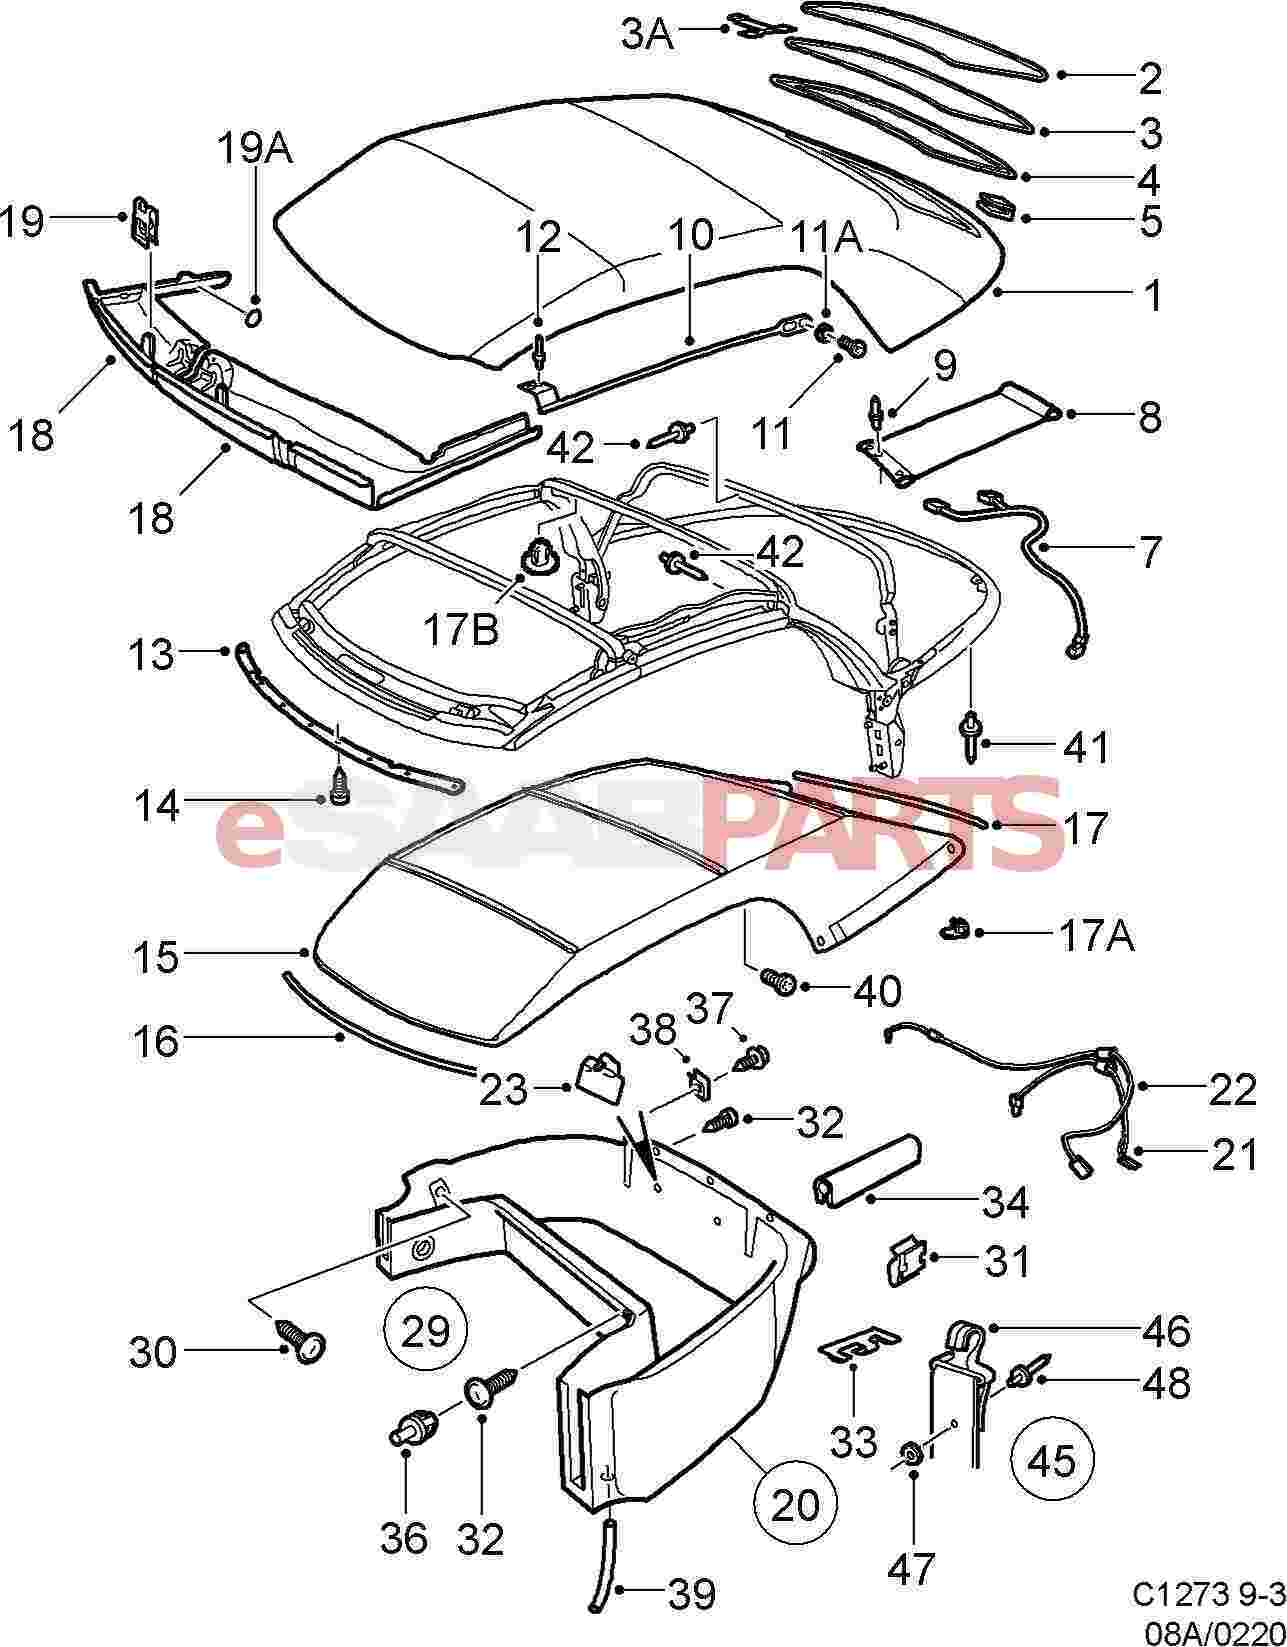 249417 Location Of Wireless Remote Alarm Ecu 99 Ls furthermore Toyota 1984 22r E Vacuum Line Diagram together with Lexus Es 300 1995 Specs And Images together with 2004 Toyota Camry V6 Water Pump Location in addition 2j5f6 Exact Location Crankshaft Sensor 1994. on 1995 lexus es300 engine diagram